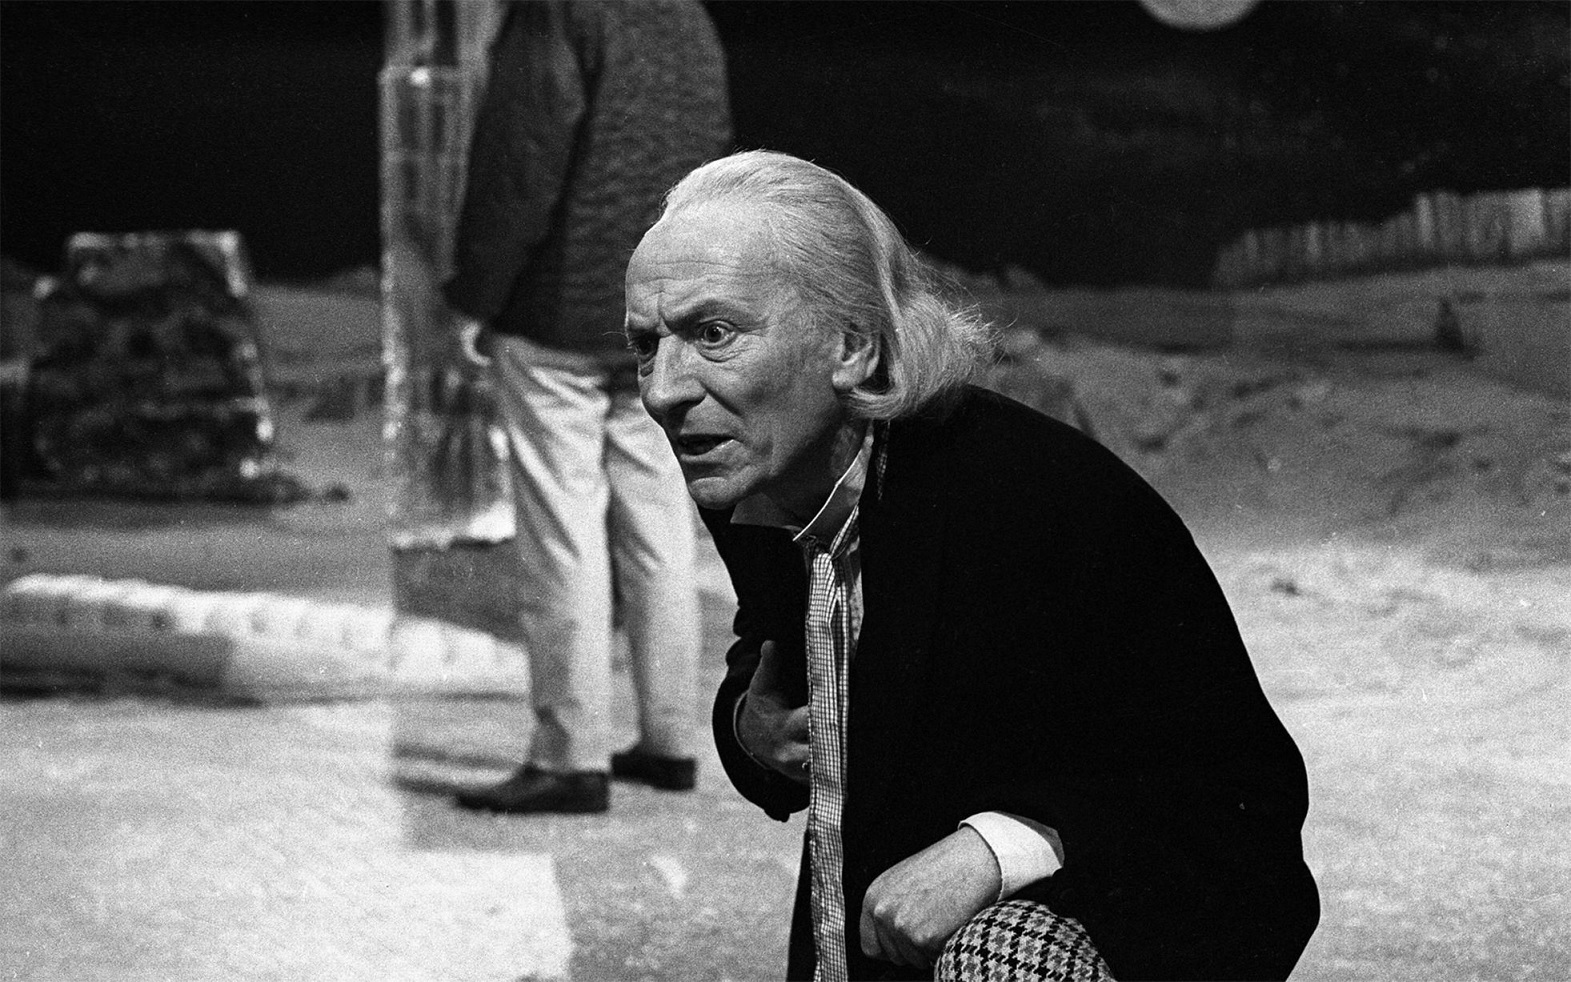 Post-Doctor Who Clip of William Hartnell Resurfaces